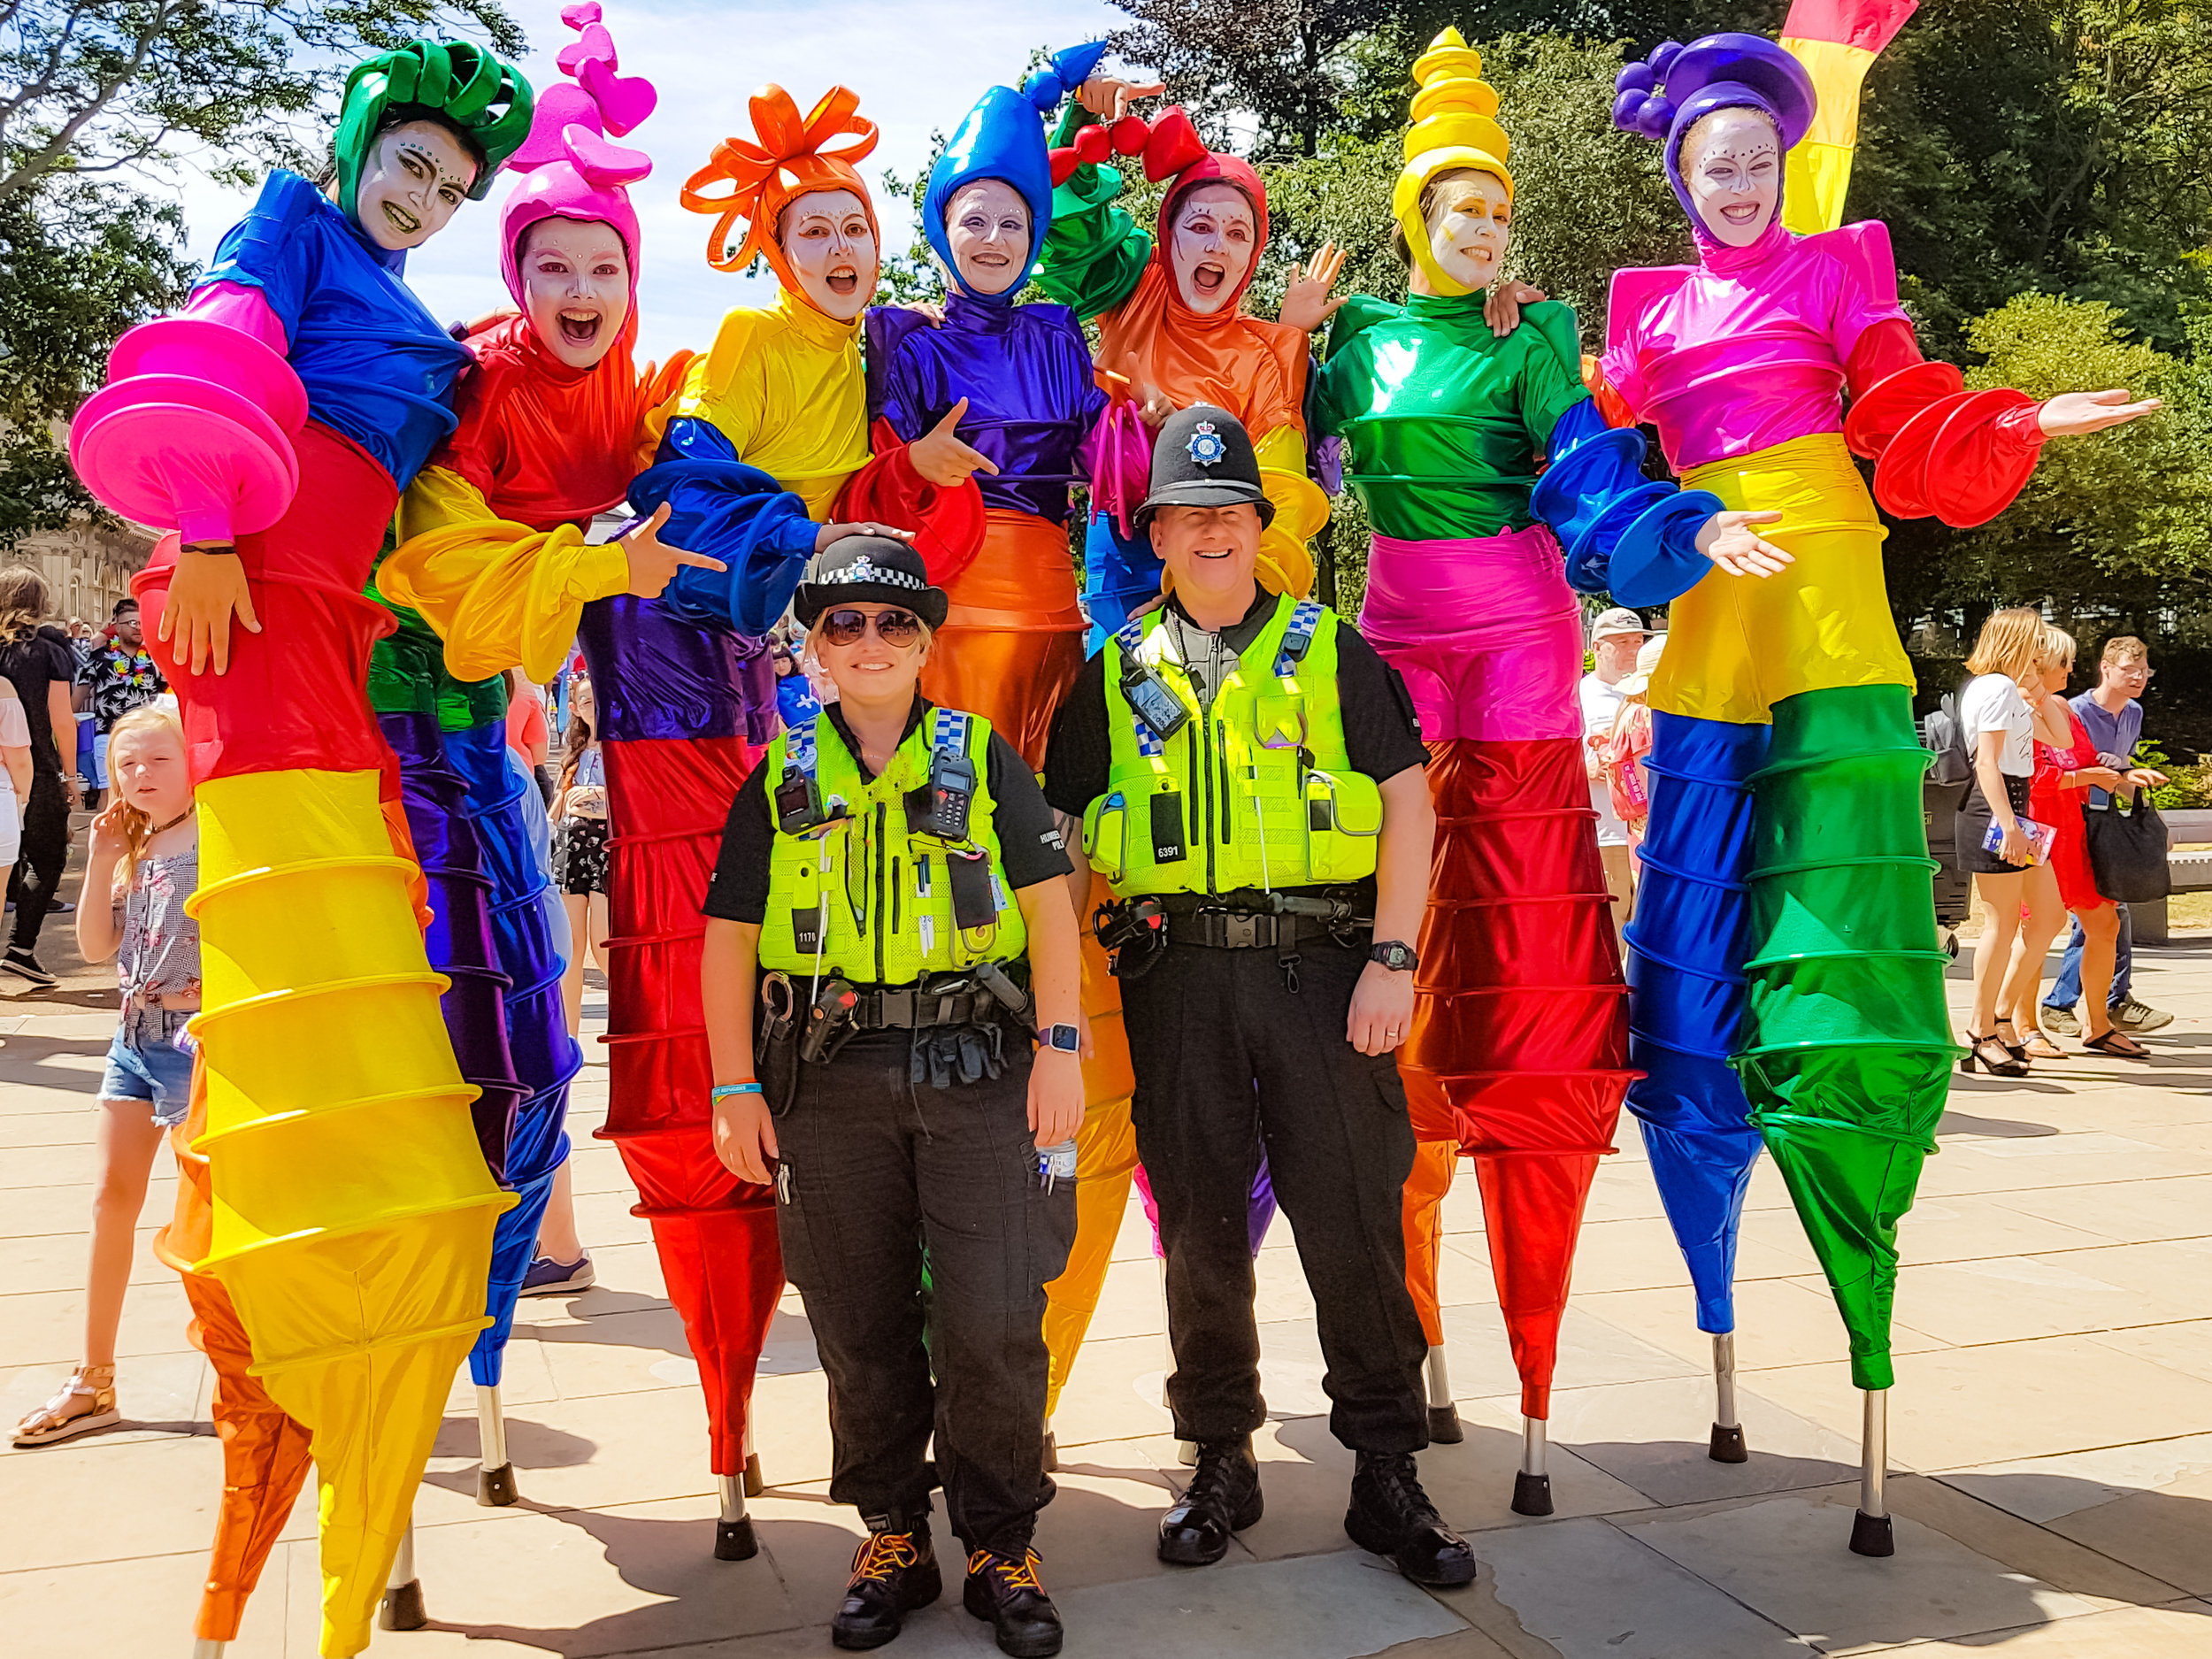 Rainbow_Carnival_Stilt_Dancers_Mixed_Colours_Police.jpg